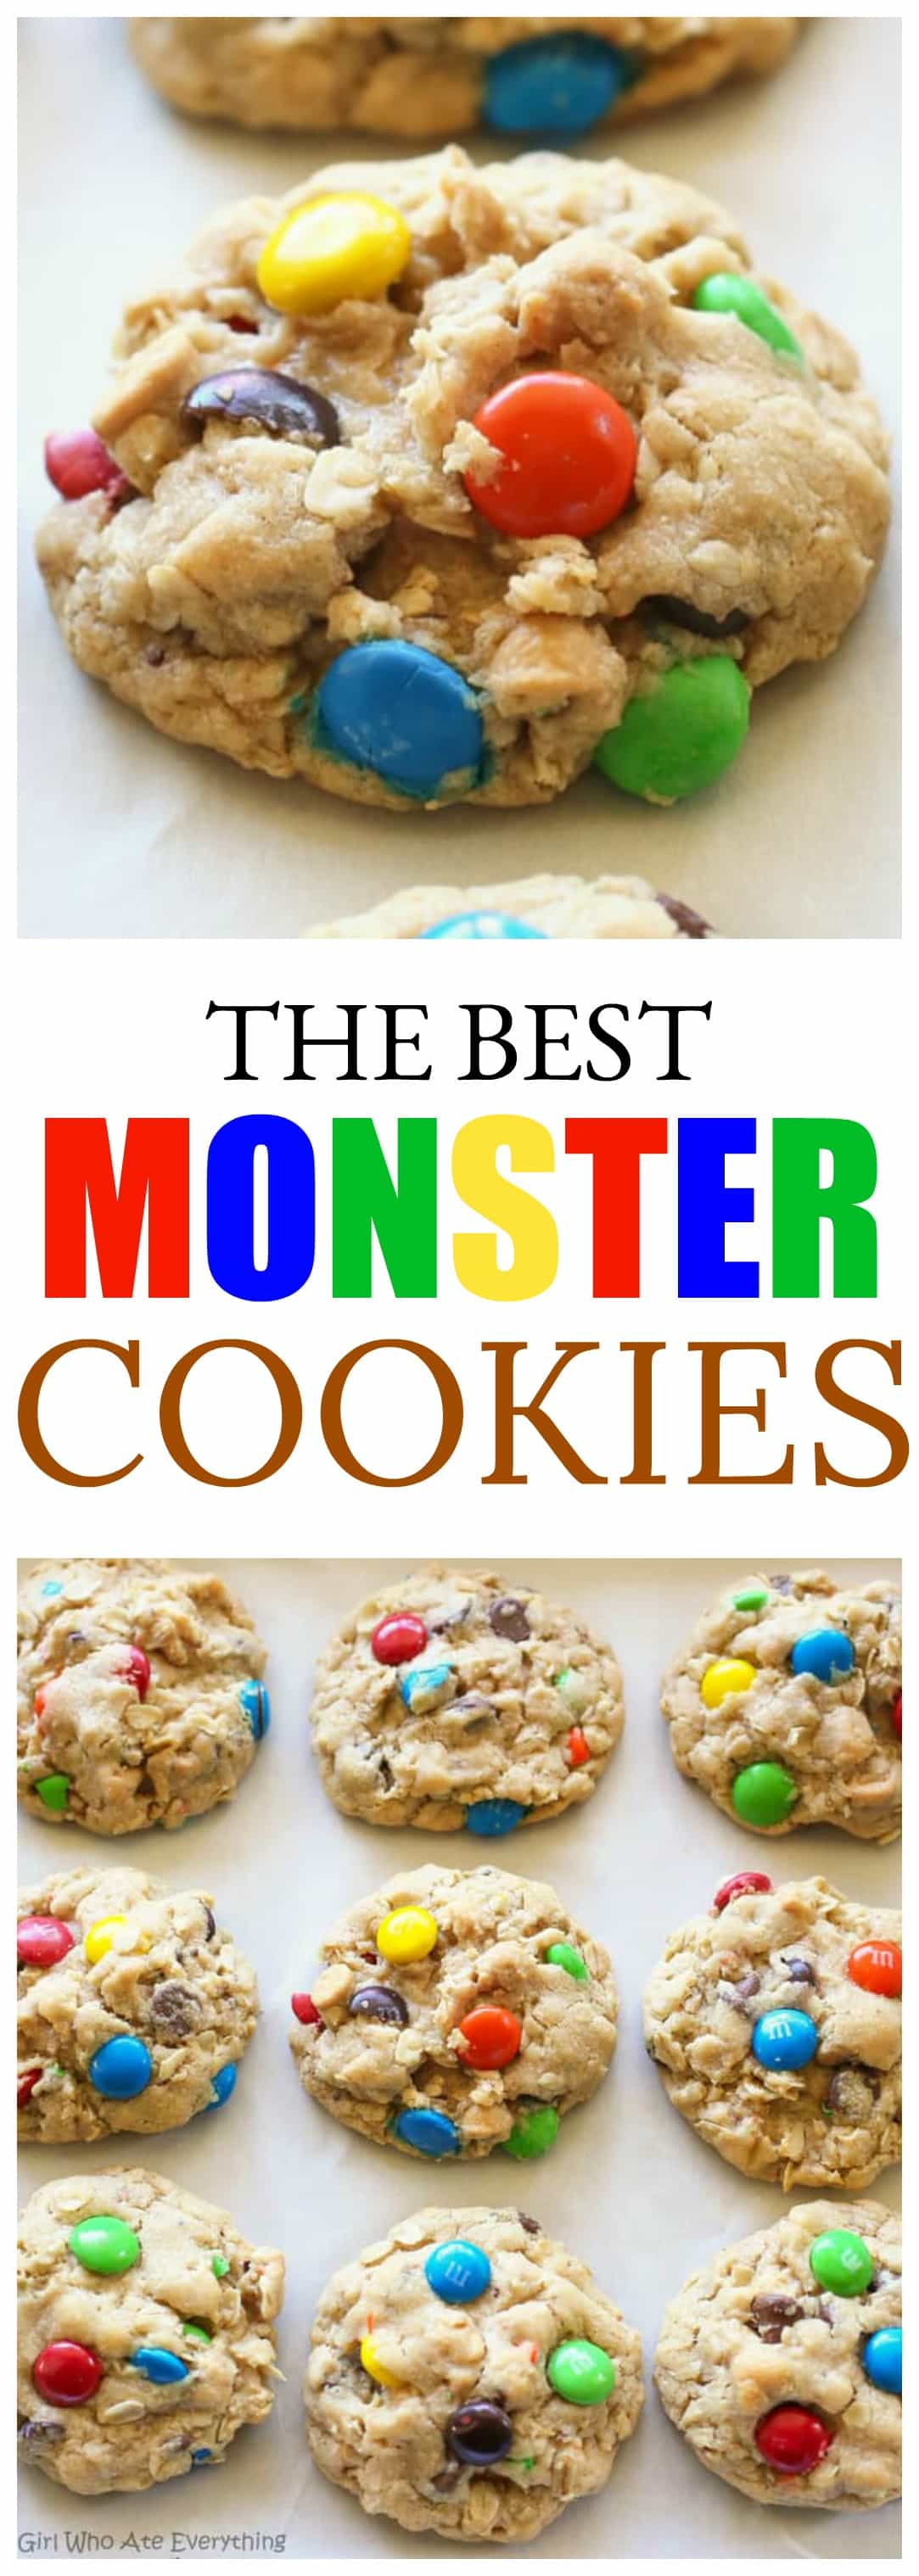 Monster Cookies - these thick, soft cookies are filled with peanut butter, oats, chocolate chips, and M&Ms. #monster #cookies #peanutbutter #recipe #oats #chewy